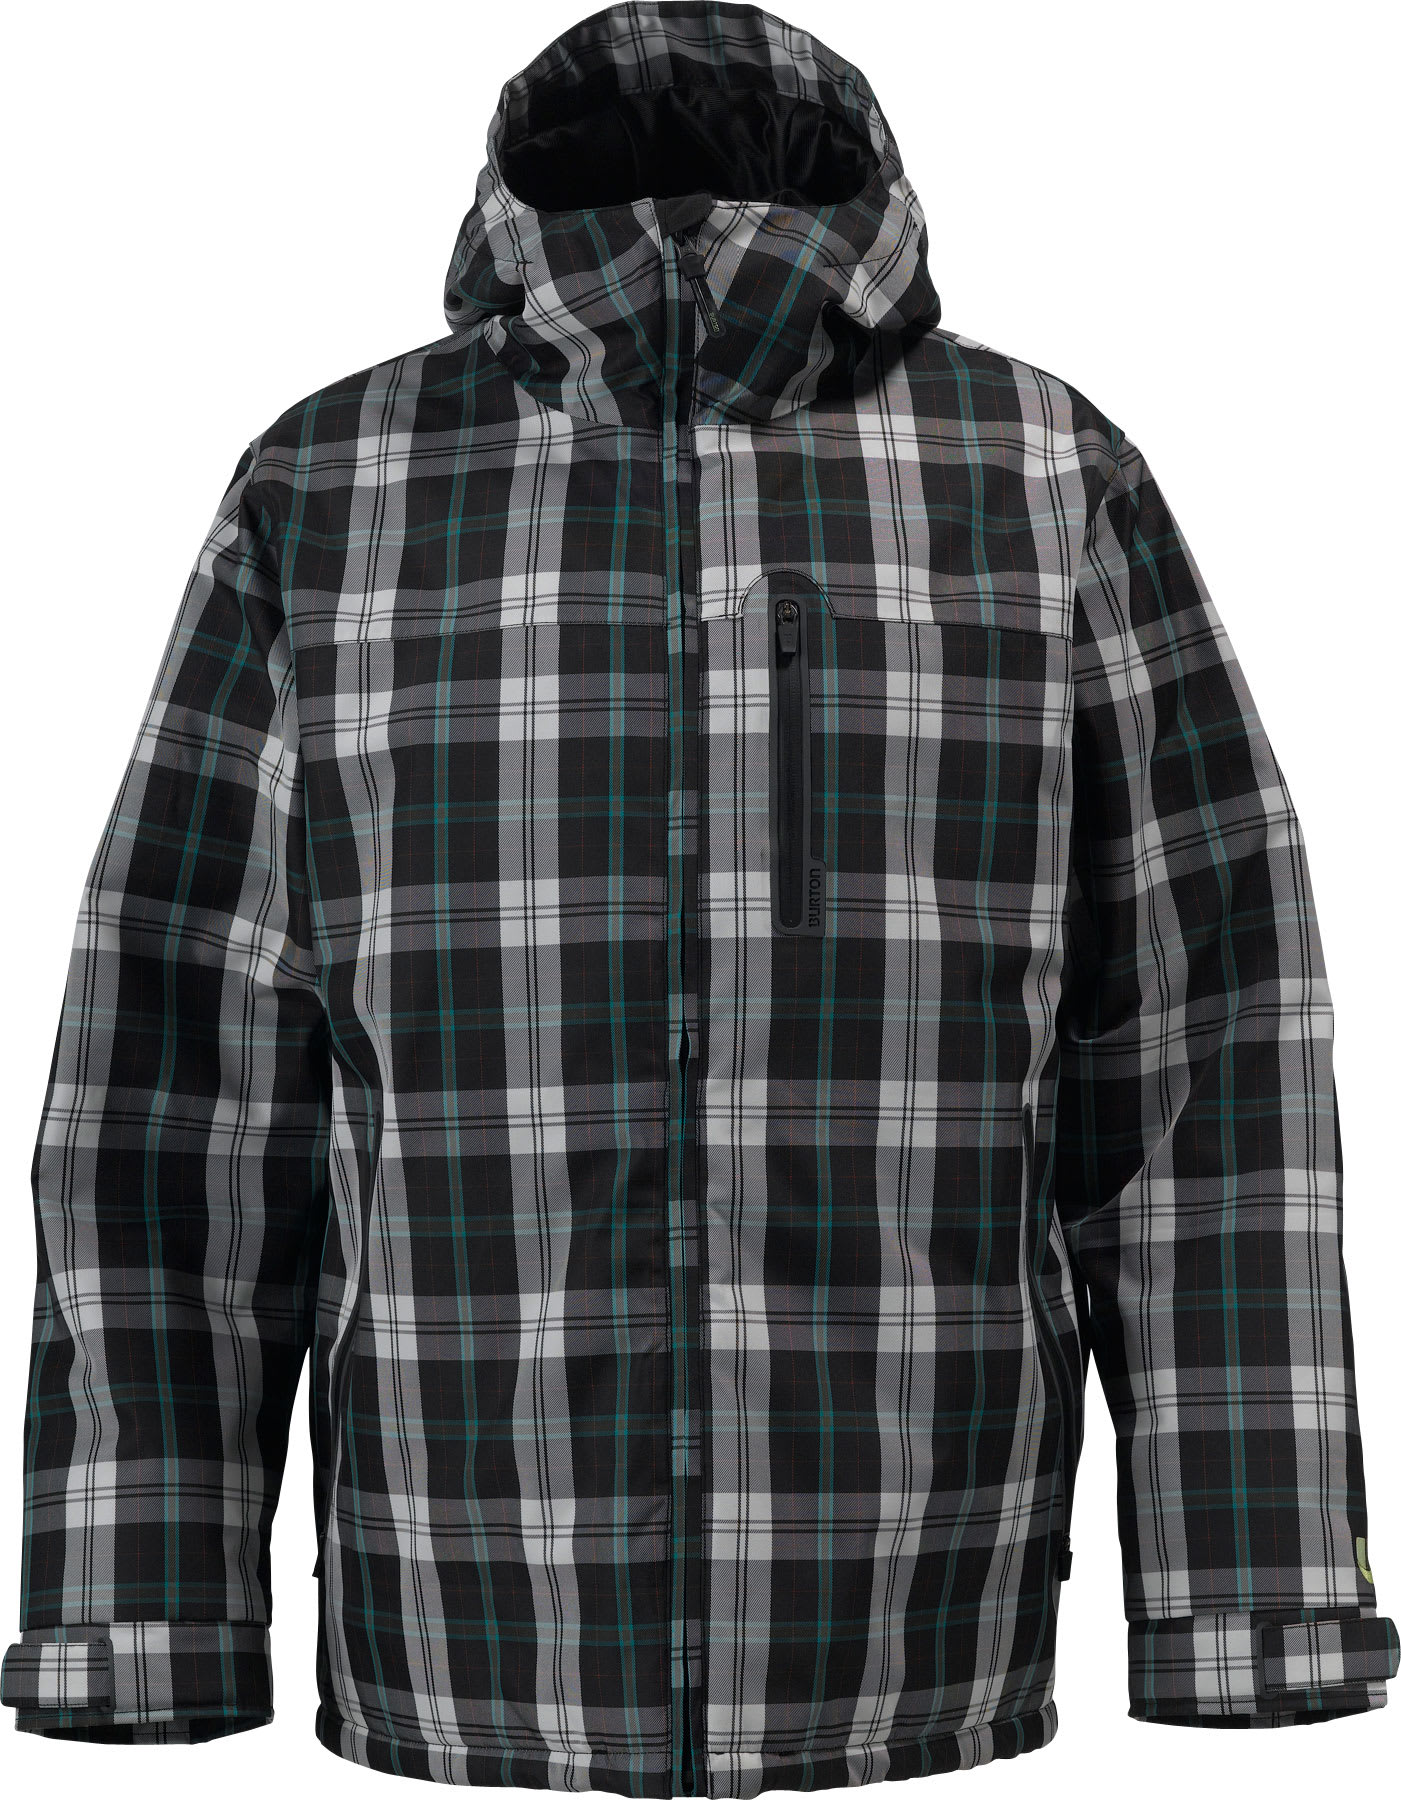 Shop for Burton Meristem Down Snowboard Jacket Gmp True Black Tartan Plaid - Men's